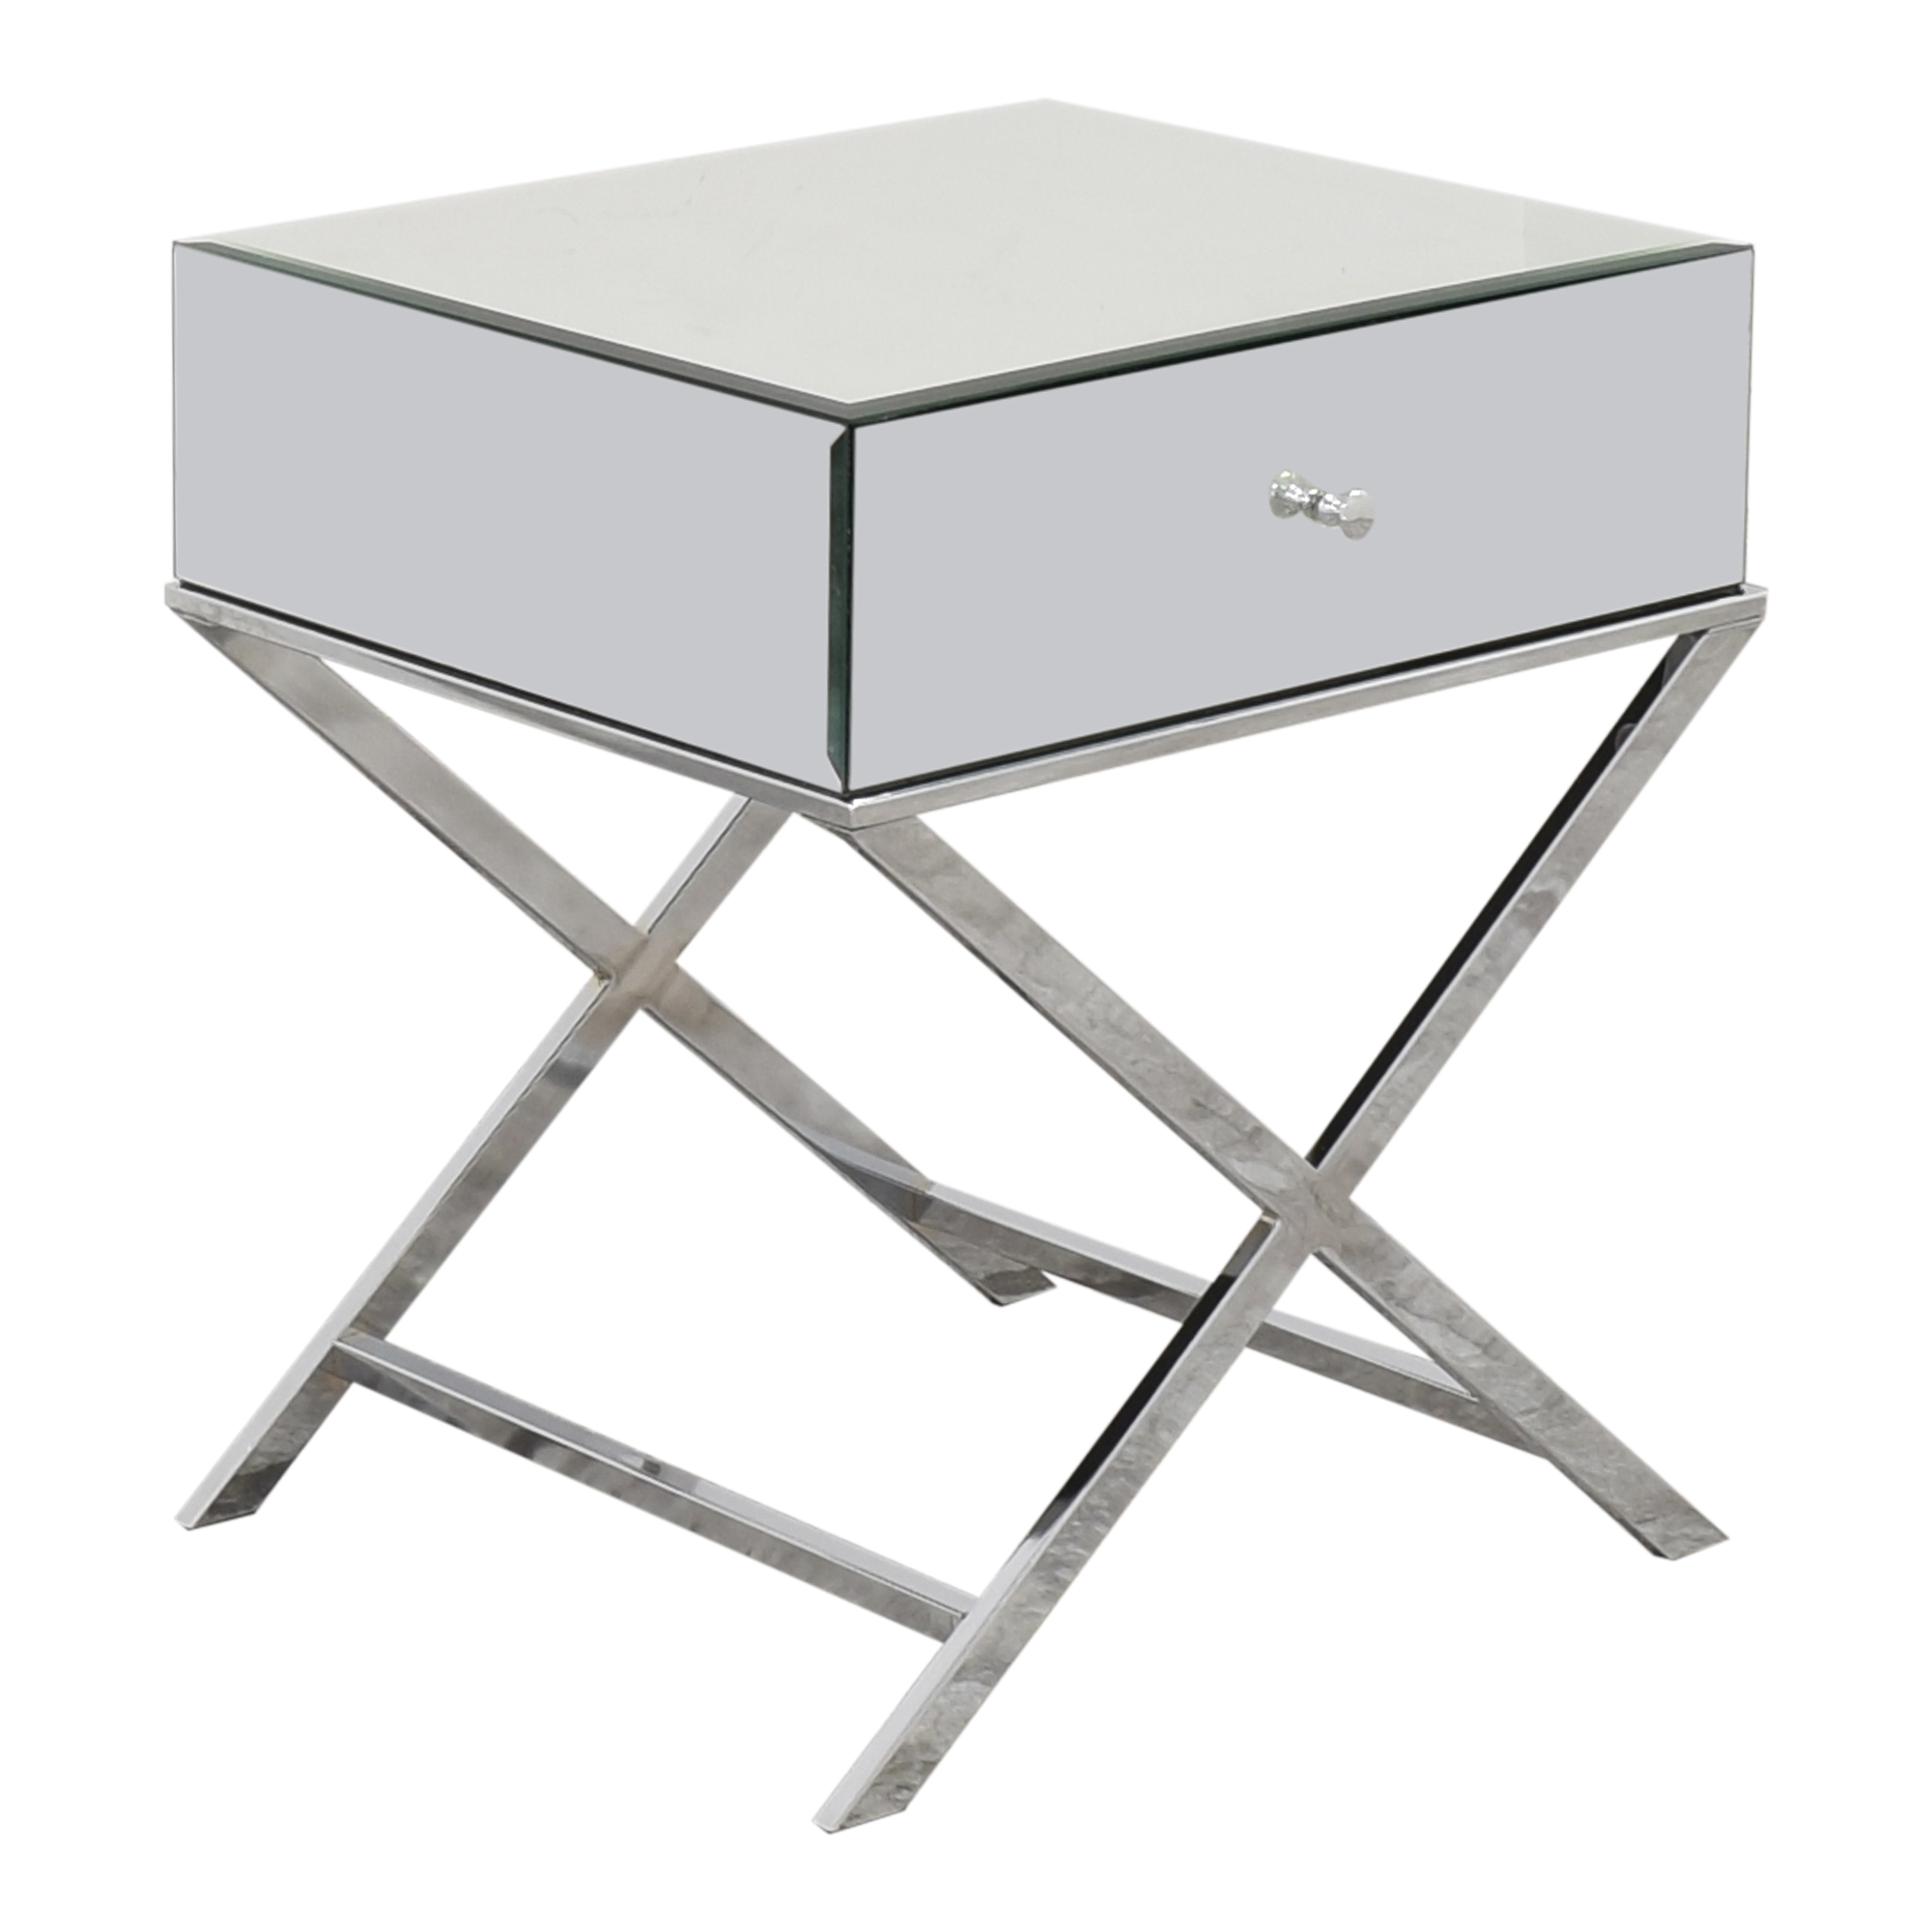 Wayfair Wayfair Desidério End Table With Storage ma